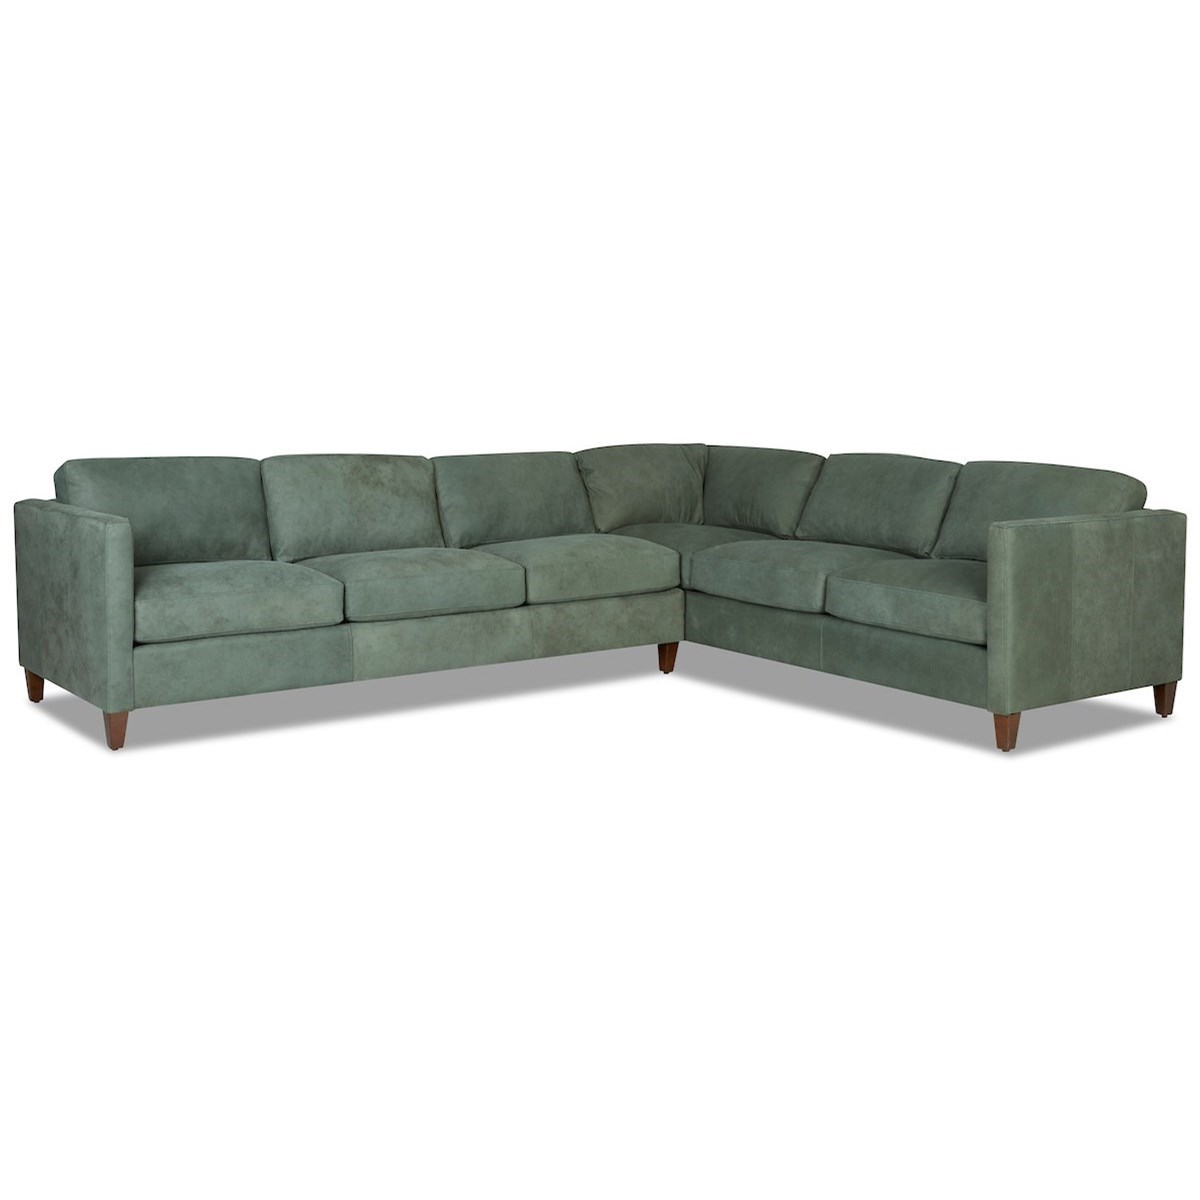 Contemporary 5-Seat Sectional Sofa w/ LAF Sofa by Klaussner ...